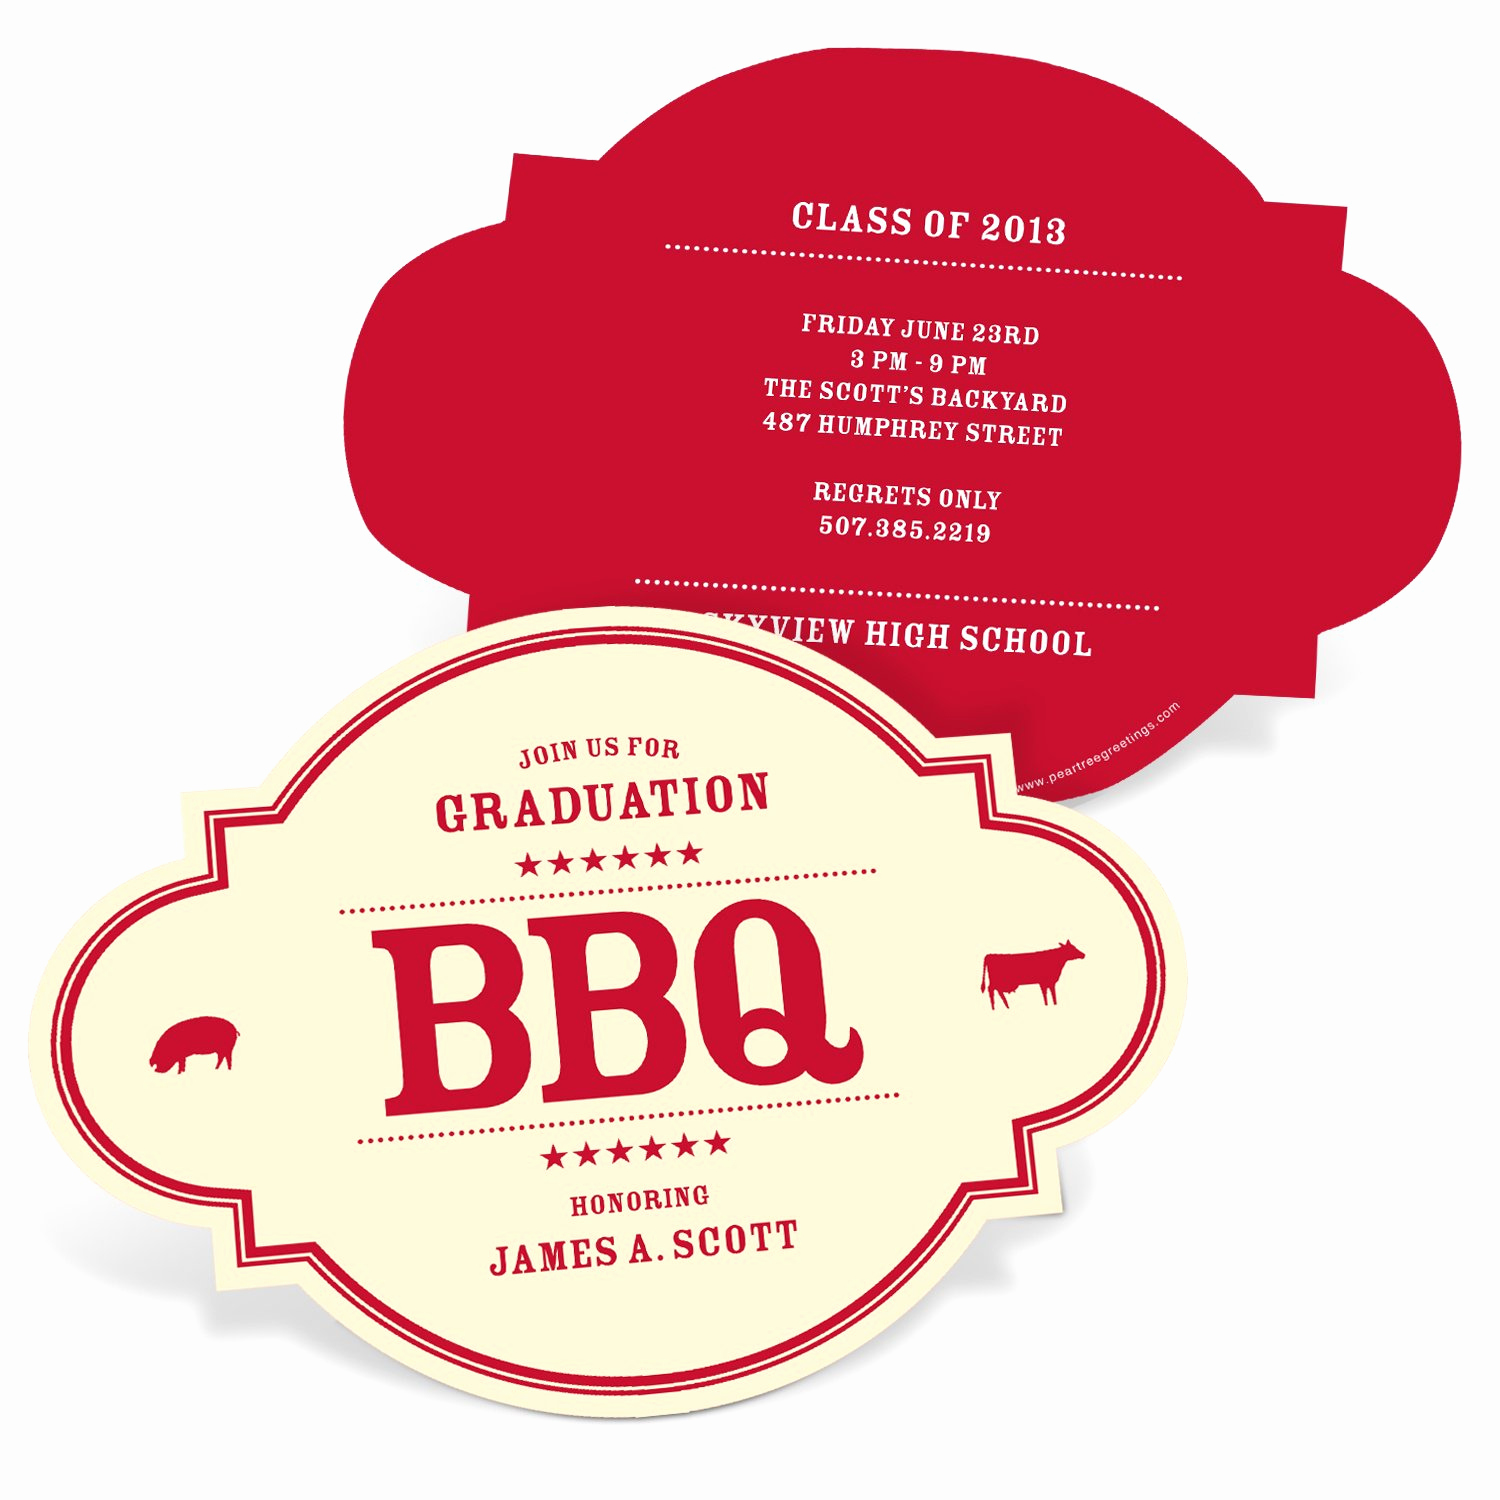 Graduation Bbq Invitation Wording Unique Graduation Bbq Invitations